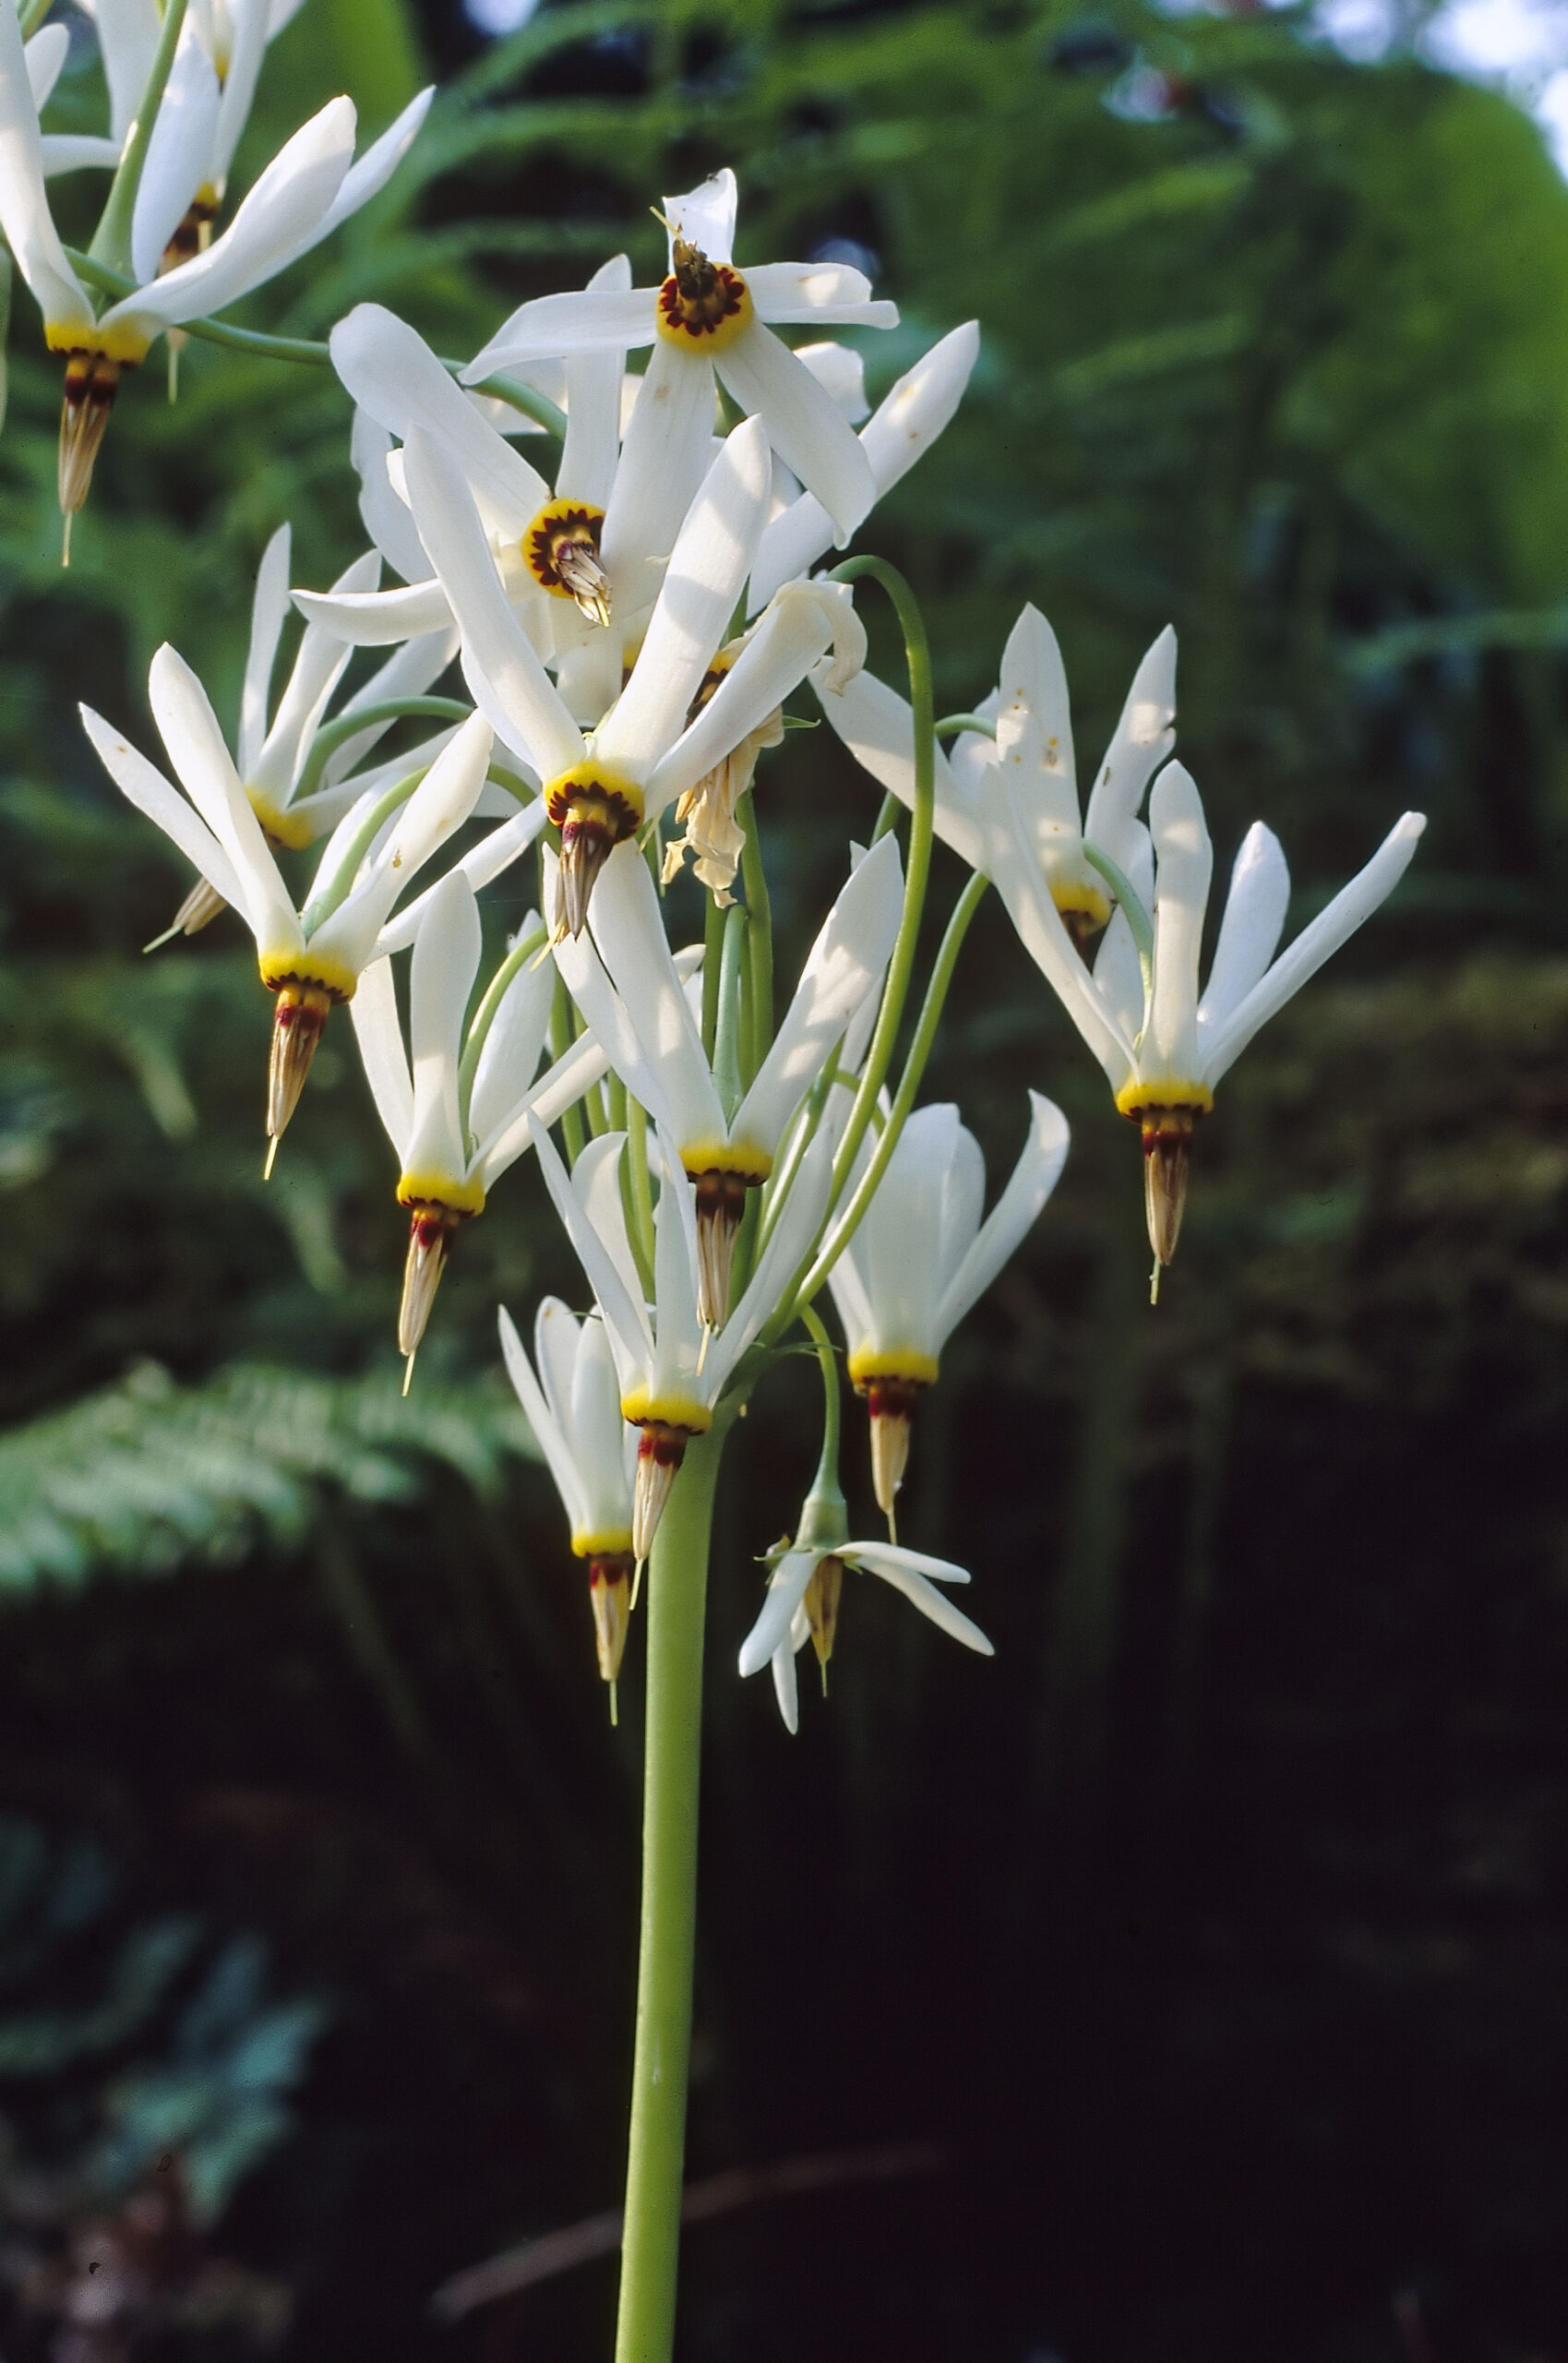 Close up shot of Dodecatheon media 'Alba's white flowers